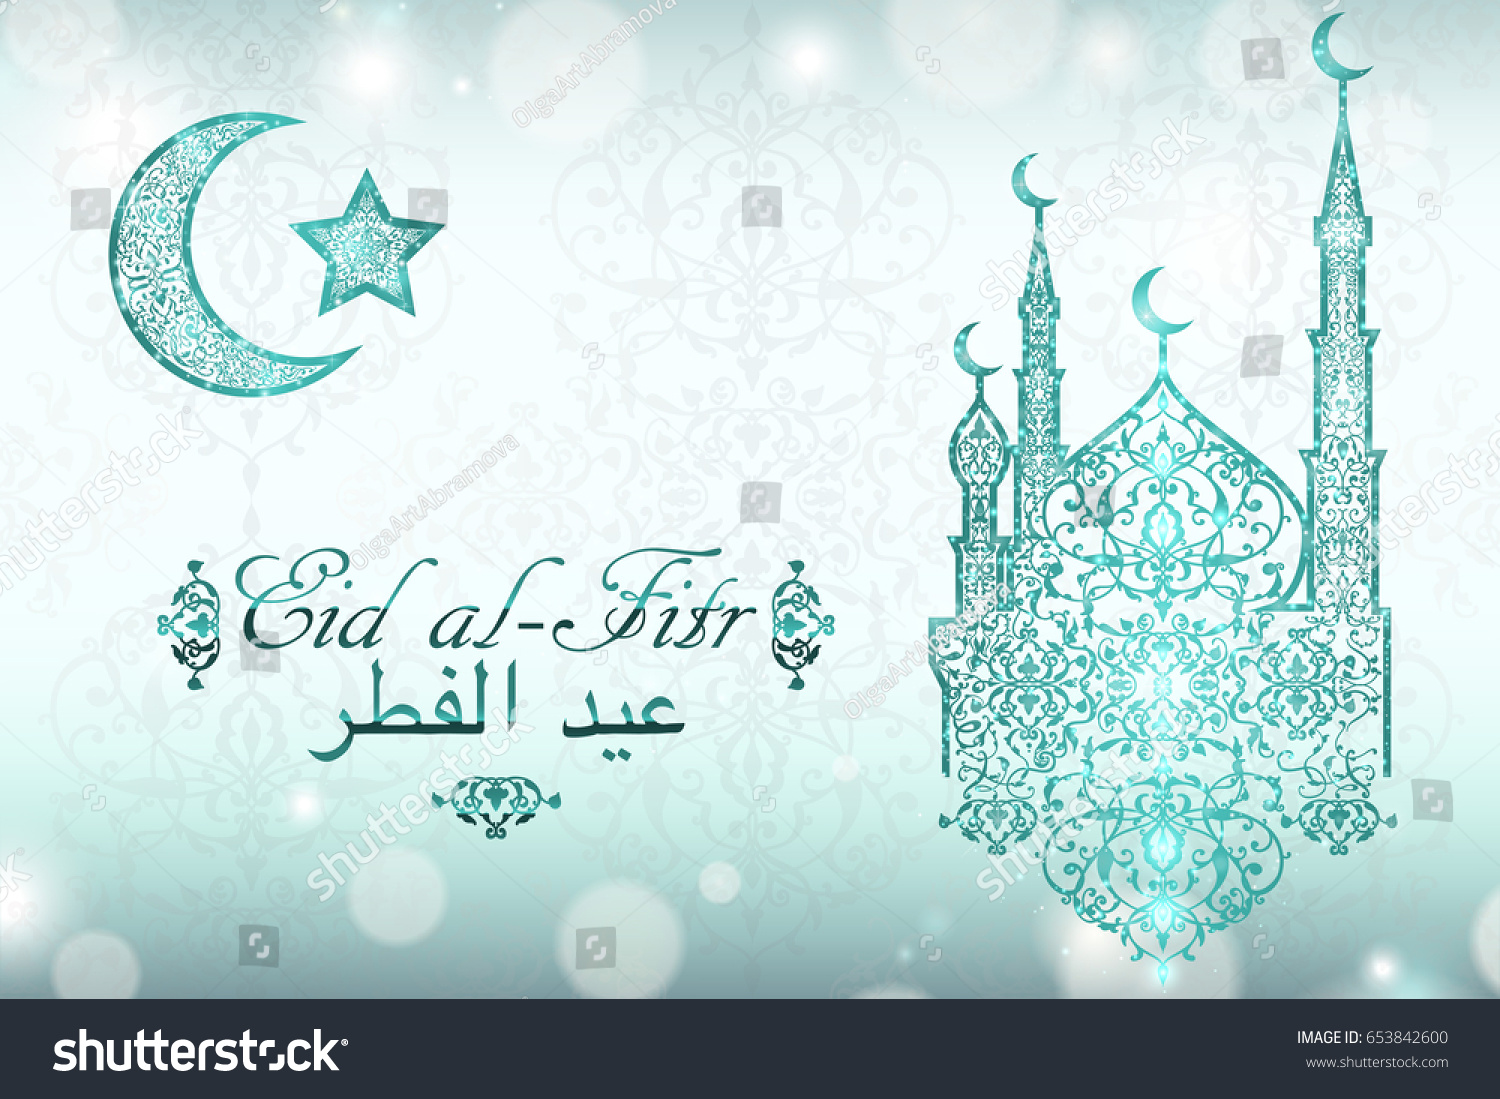 Eid al fitr greeting card beautiful stock vector 653842600 eid al fitr greeting card with beautiful mosque muslim symbols arabic calligraphy is translated kristyandbryce Images